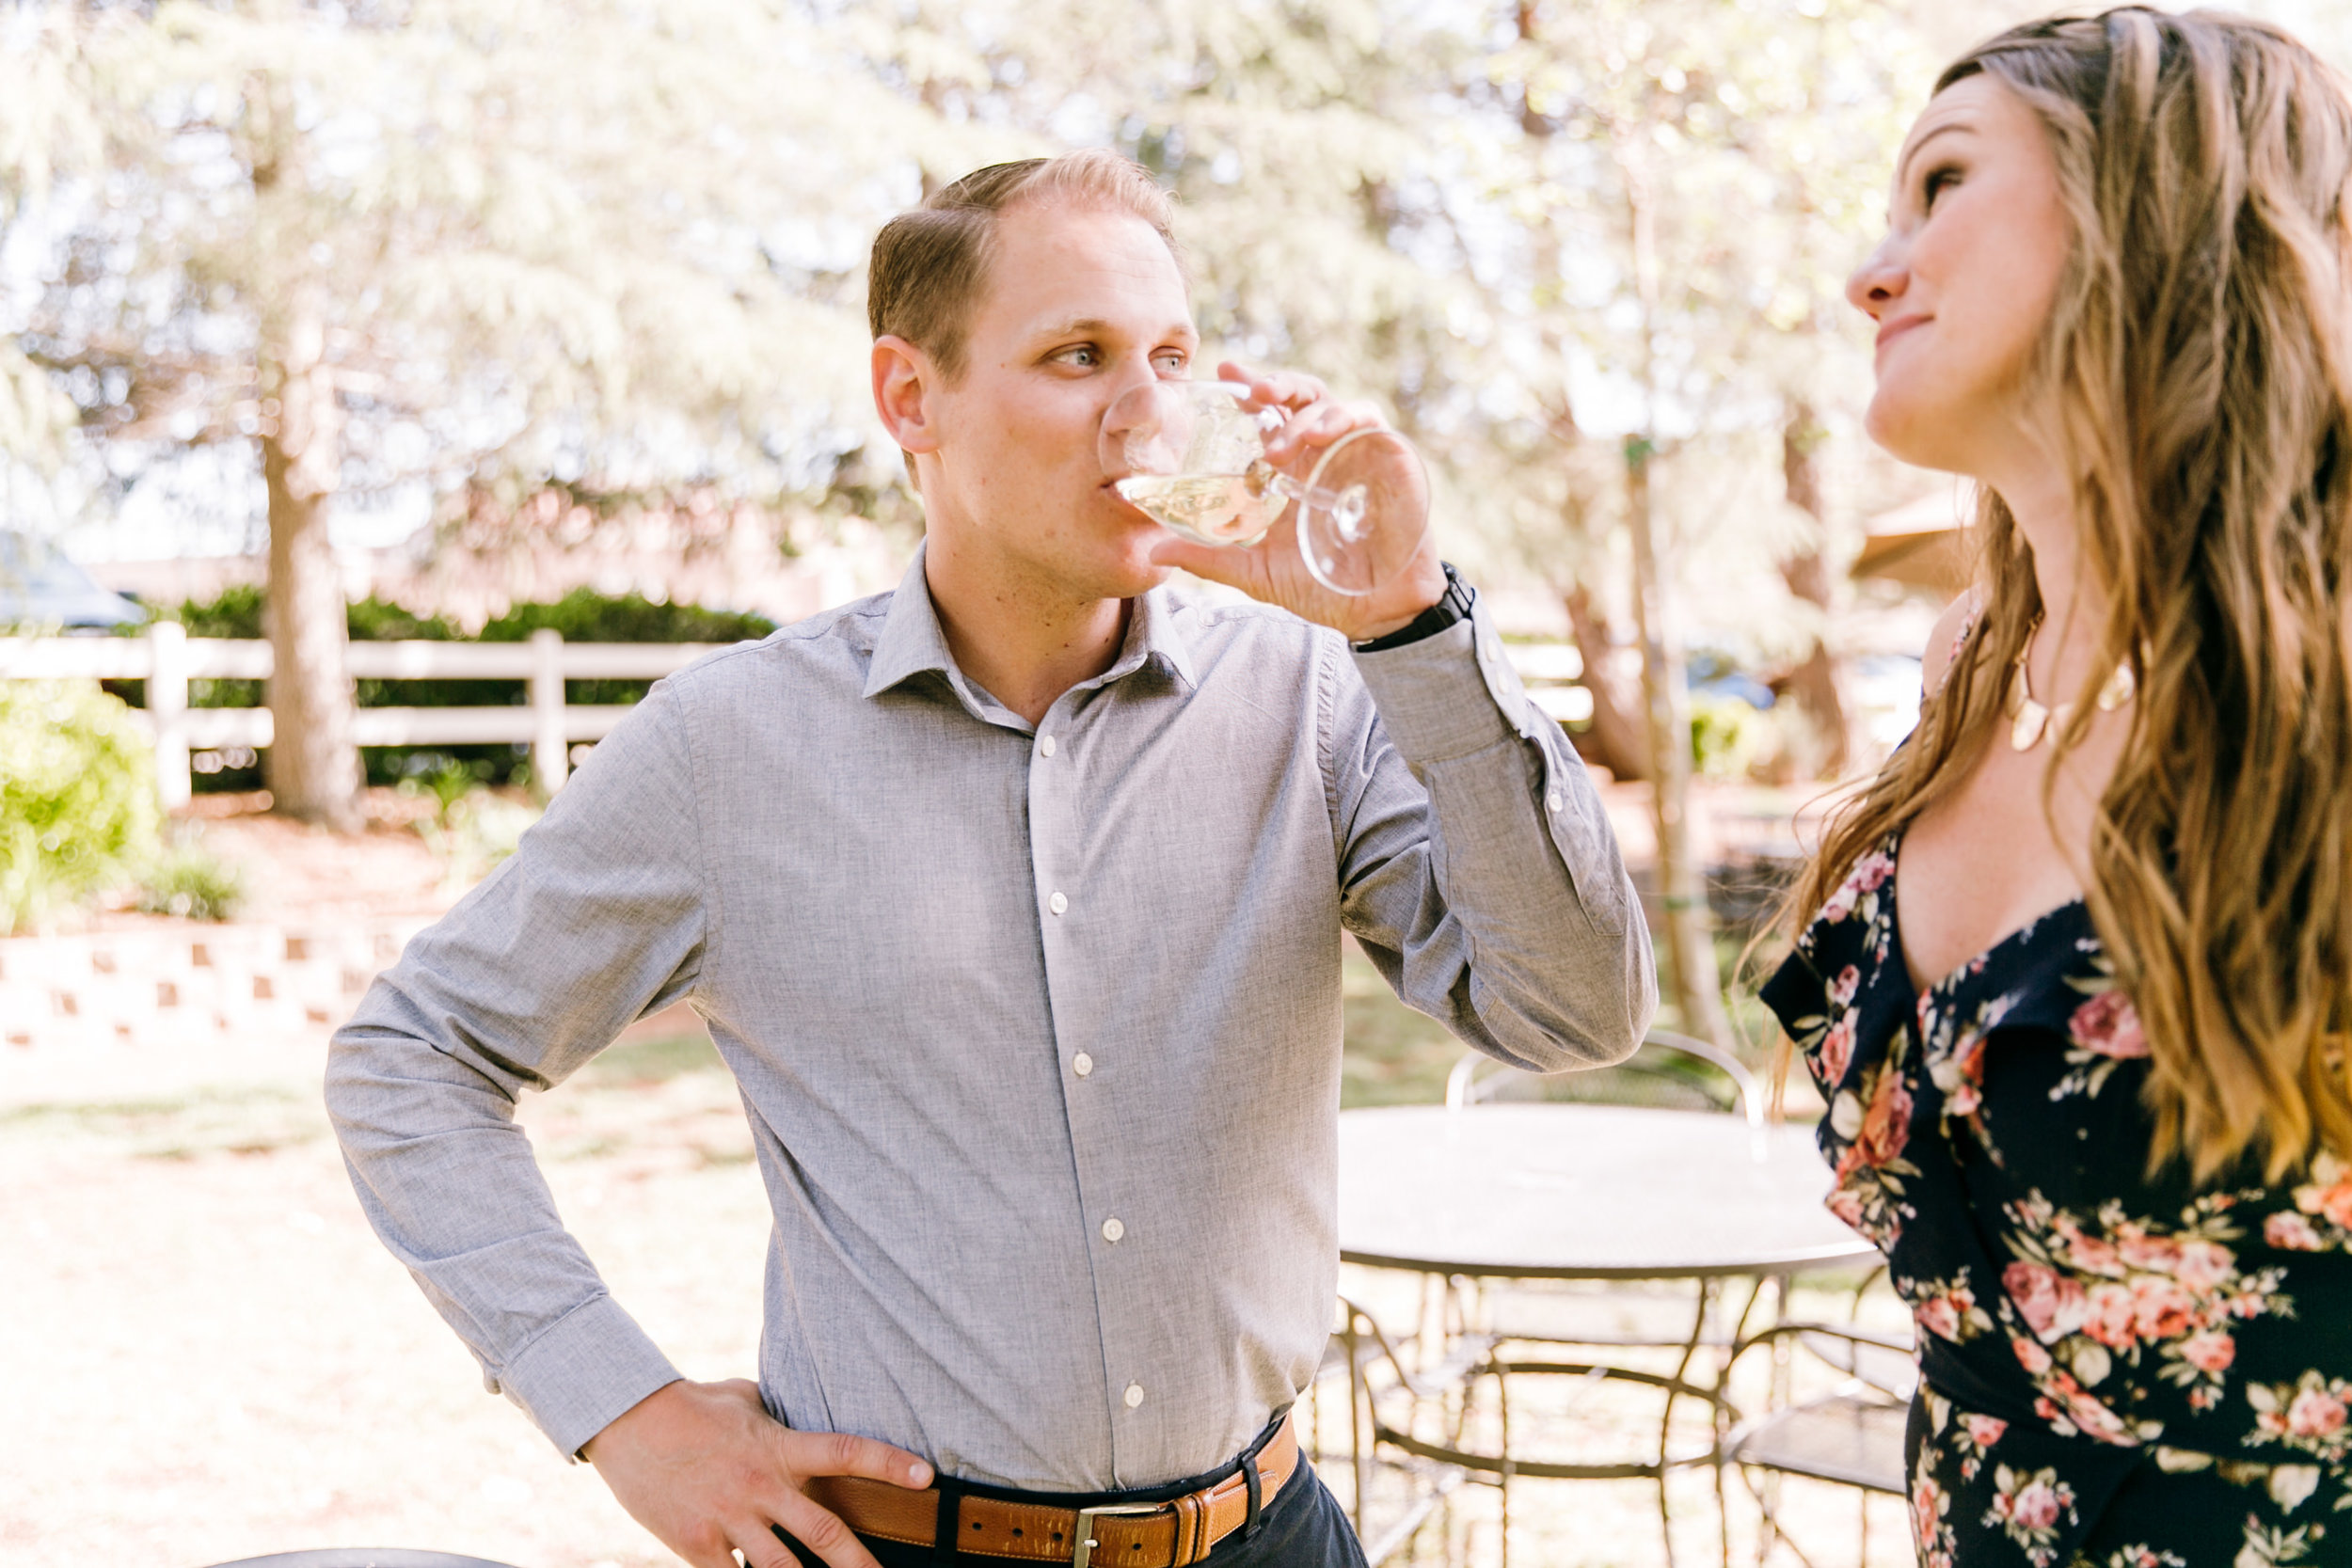 Temecula engagement photographer, SoCal wedding photographer, Southern California engagement photographer, Wilson Creek Winery engagement photographer, Wilson Creek engagement shoot, Temecula shoot